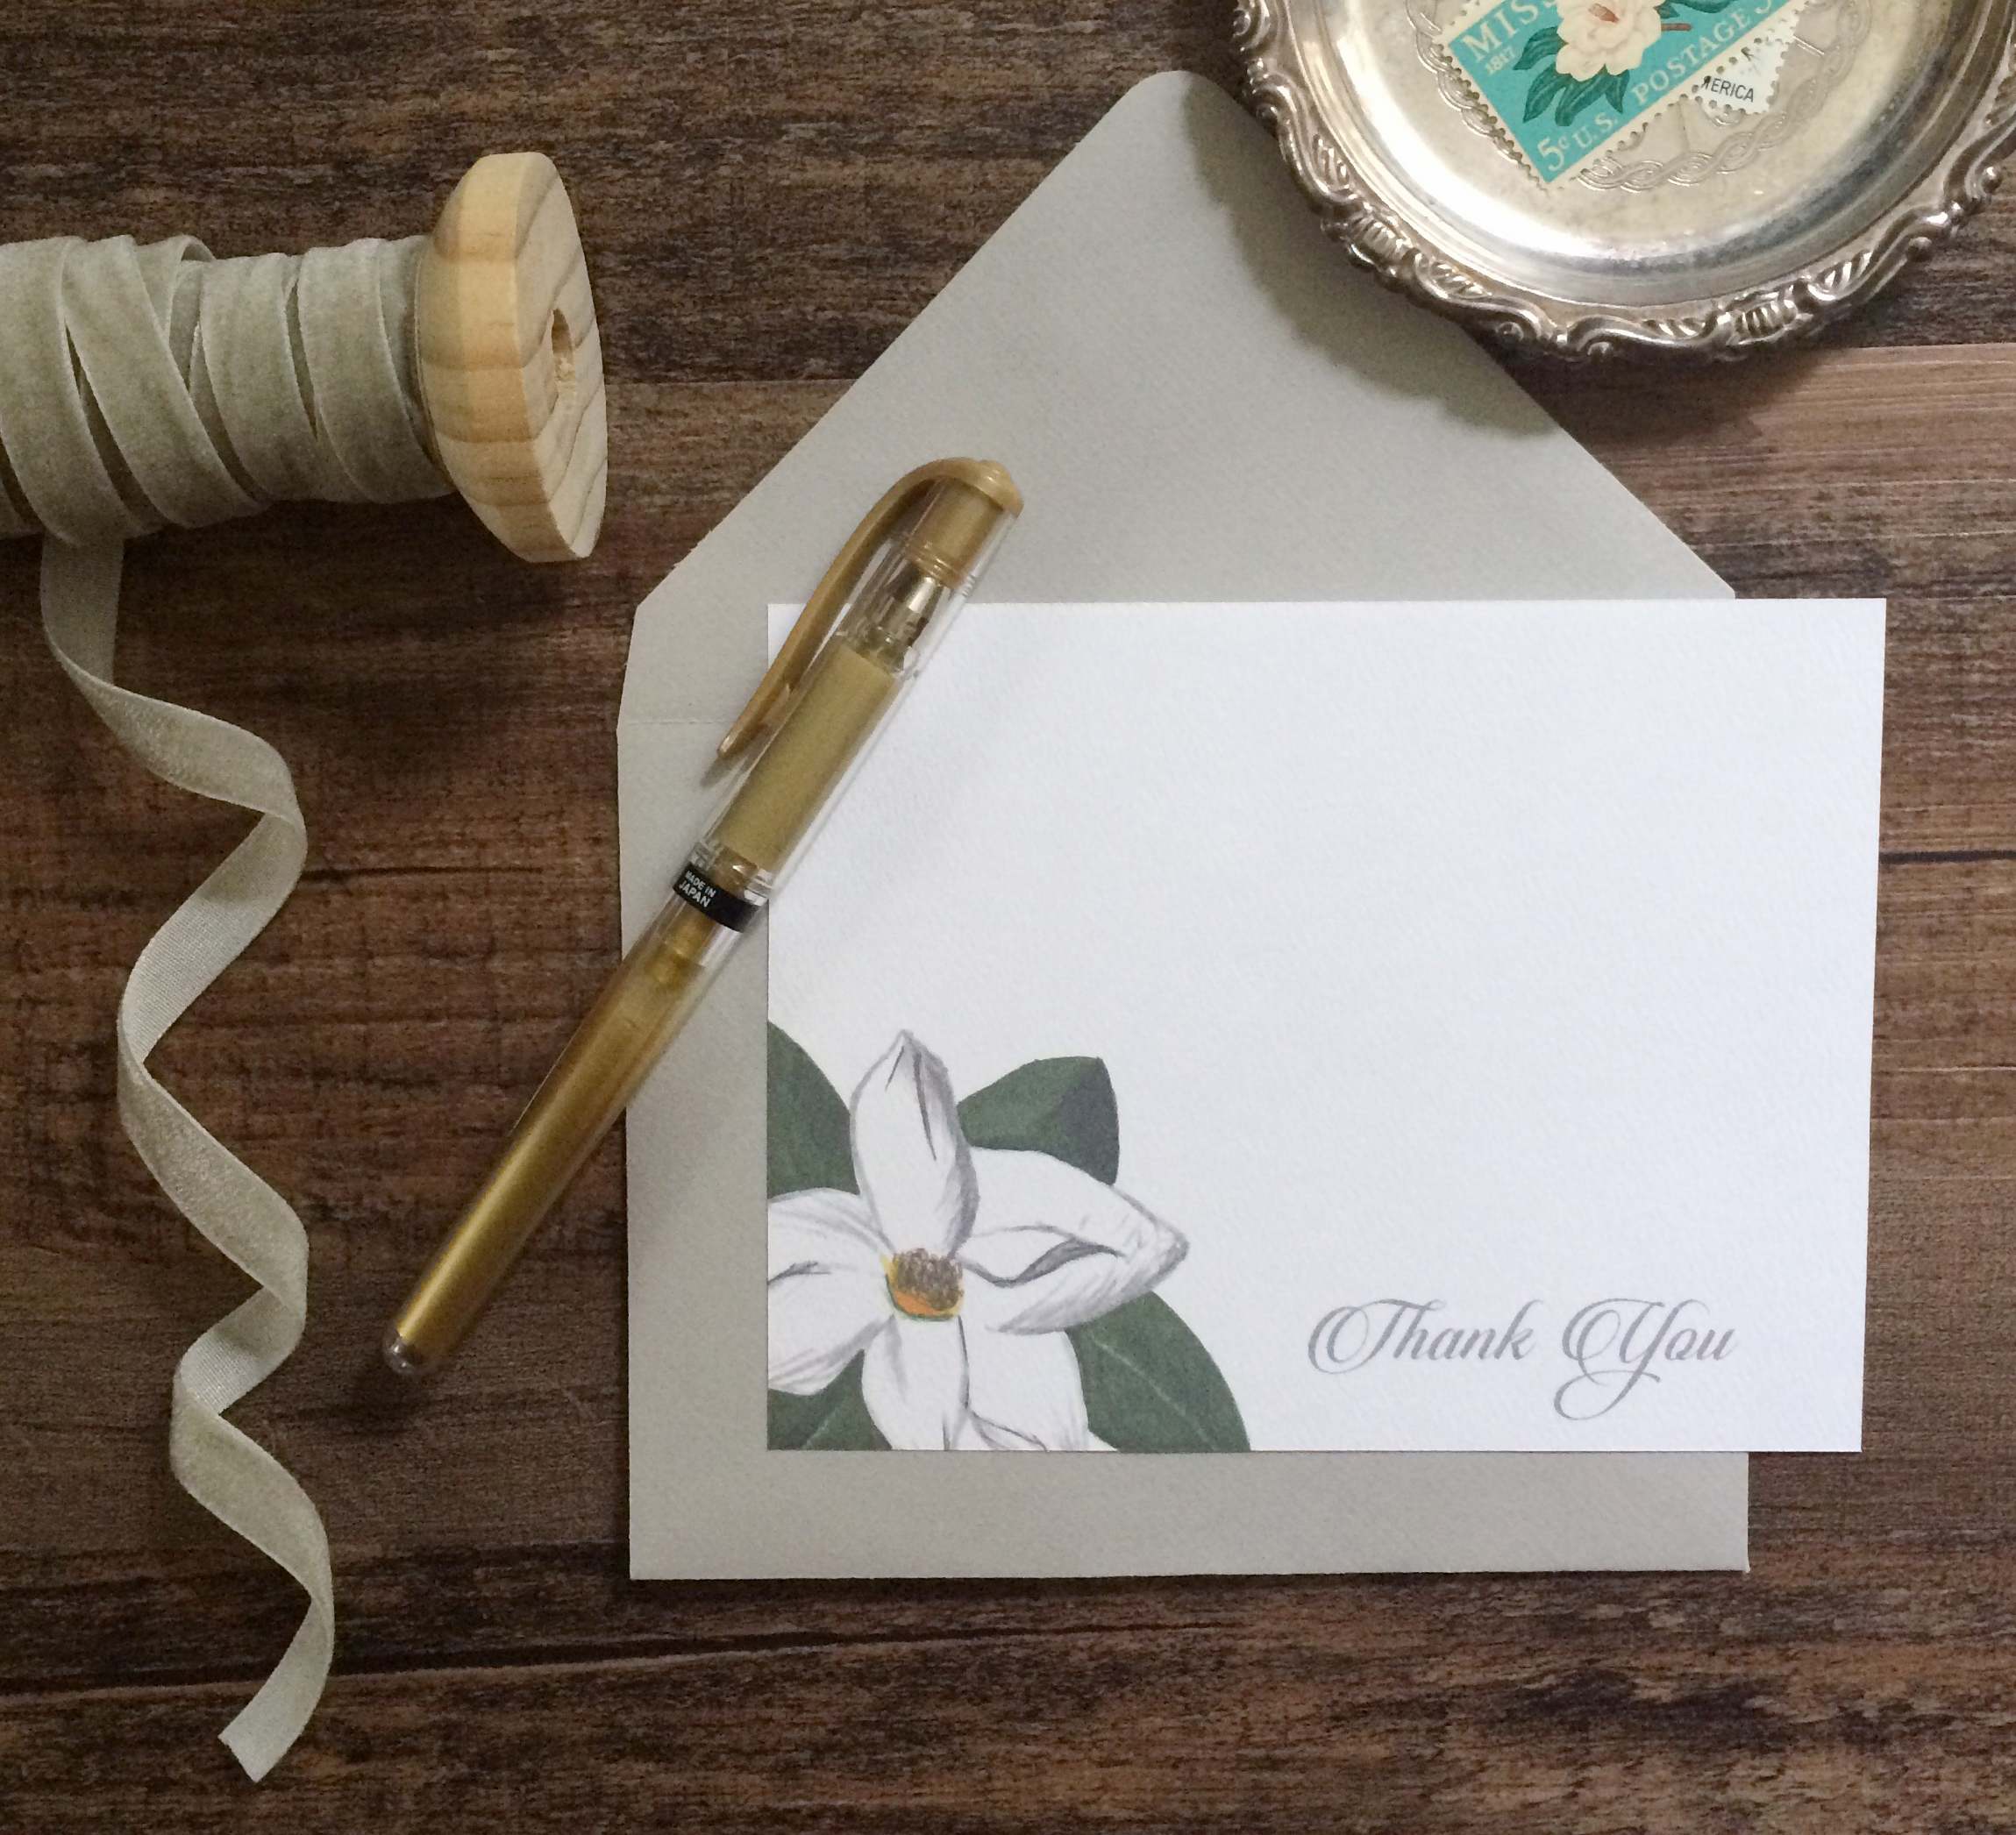 Top Etiquette Tips for Writing Thank You Notes